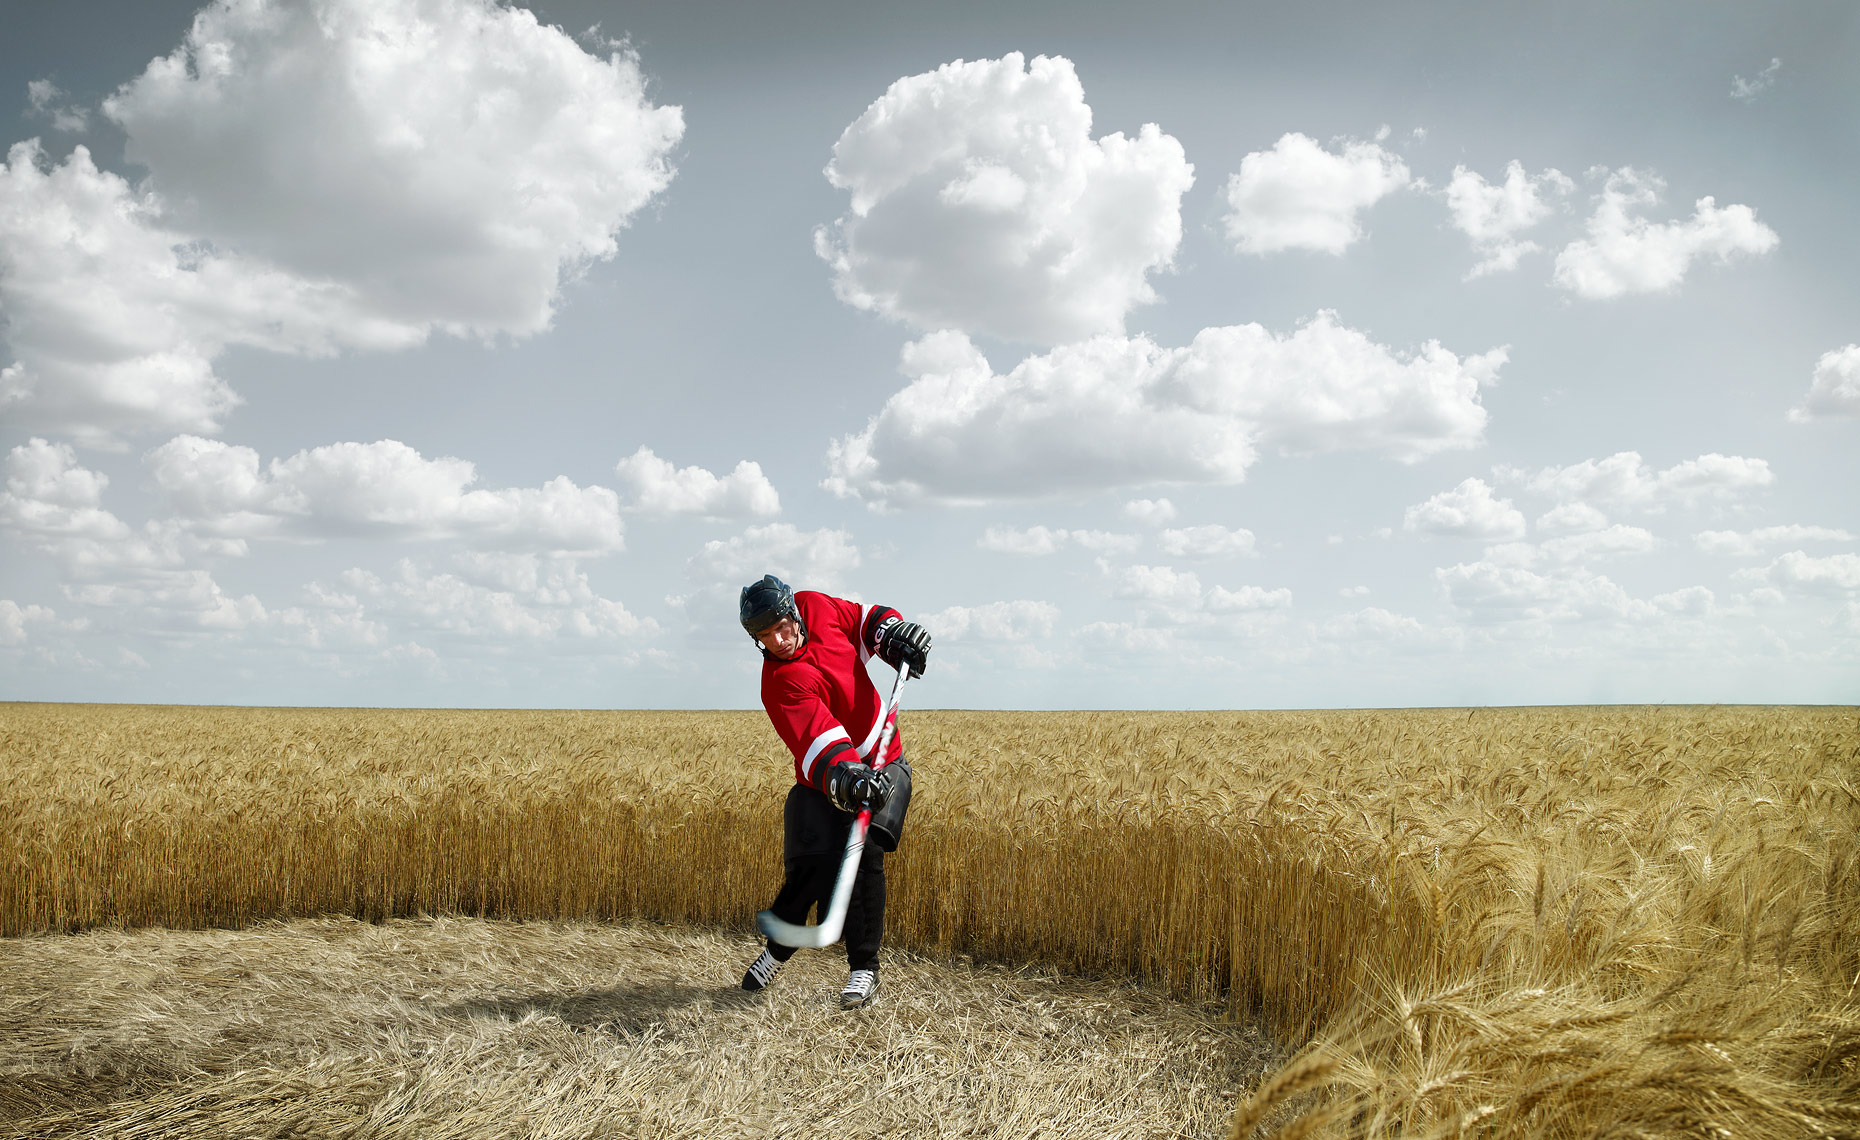 Hockey Player in a wheat field - Cross Iron Mills